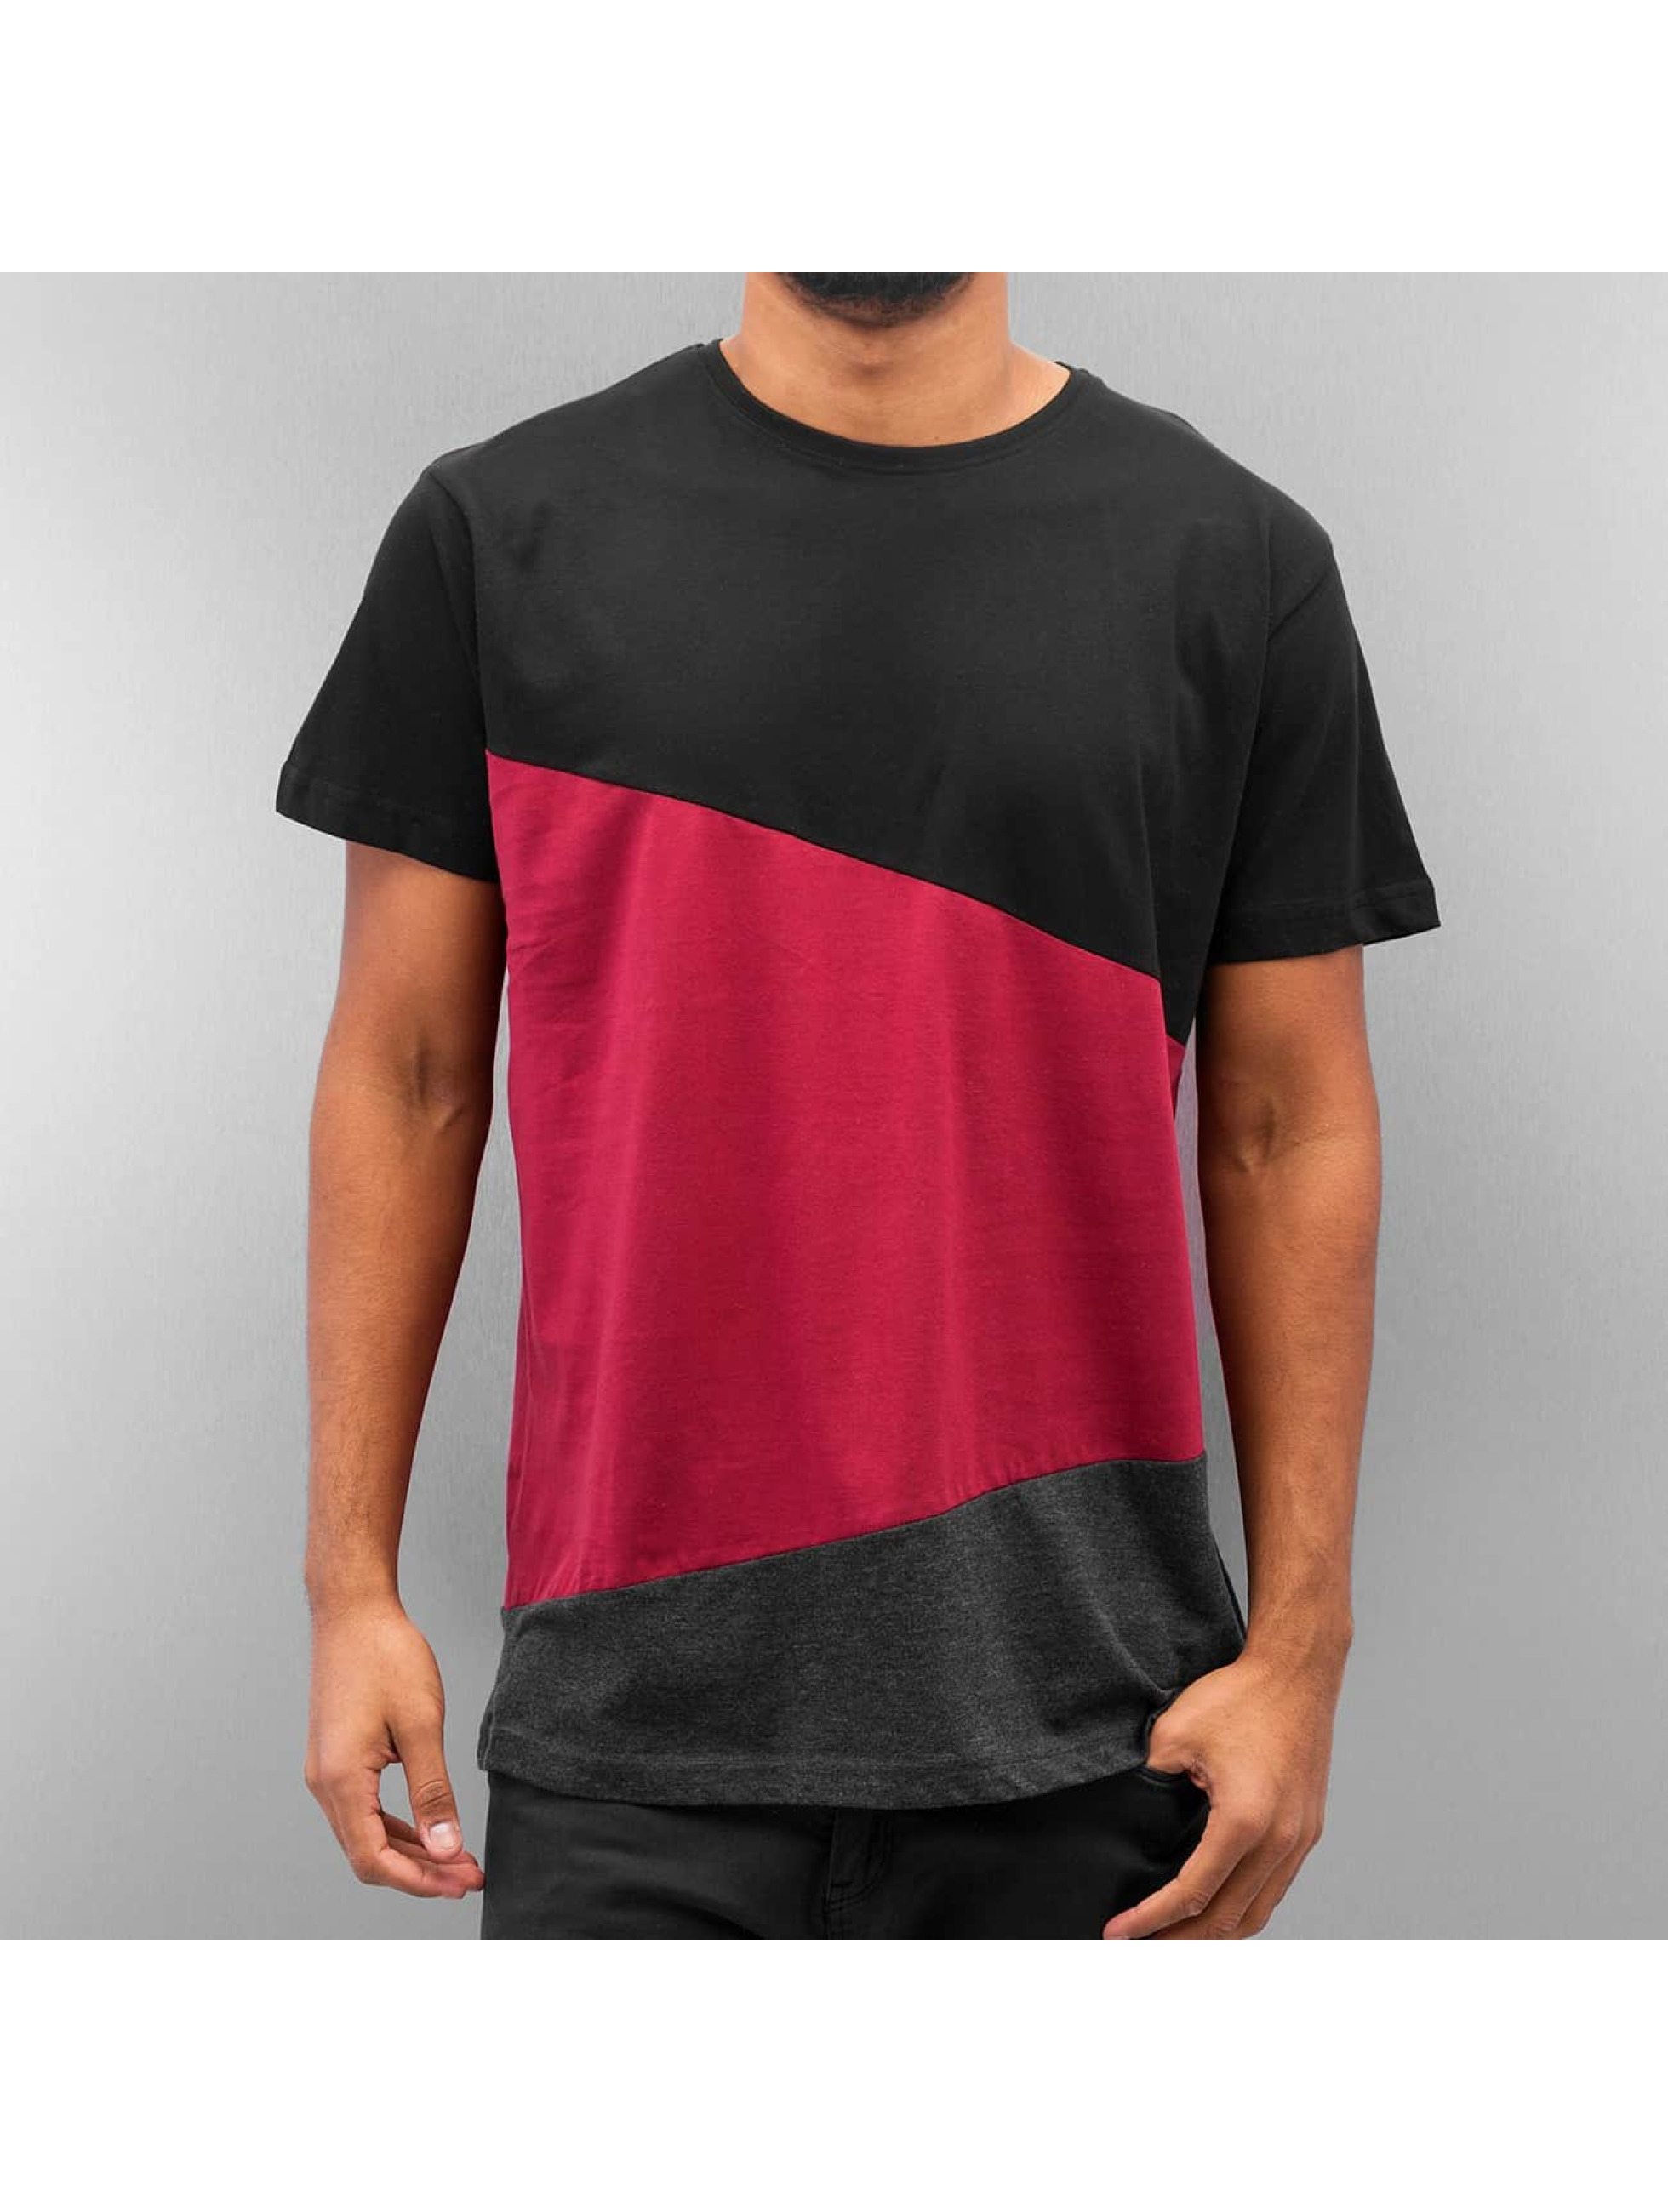 Urban Classics T-shirt Long Shaped Zig Zag nero